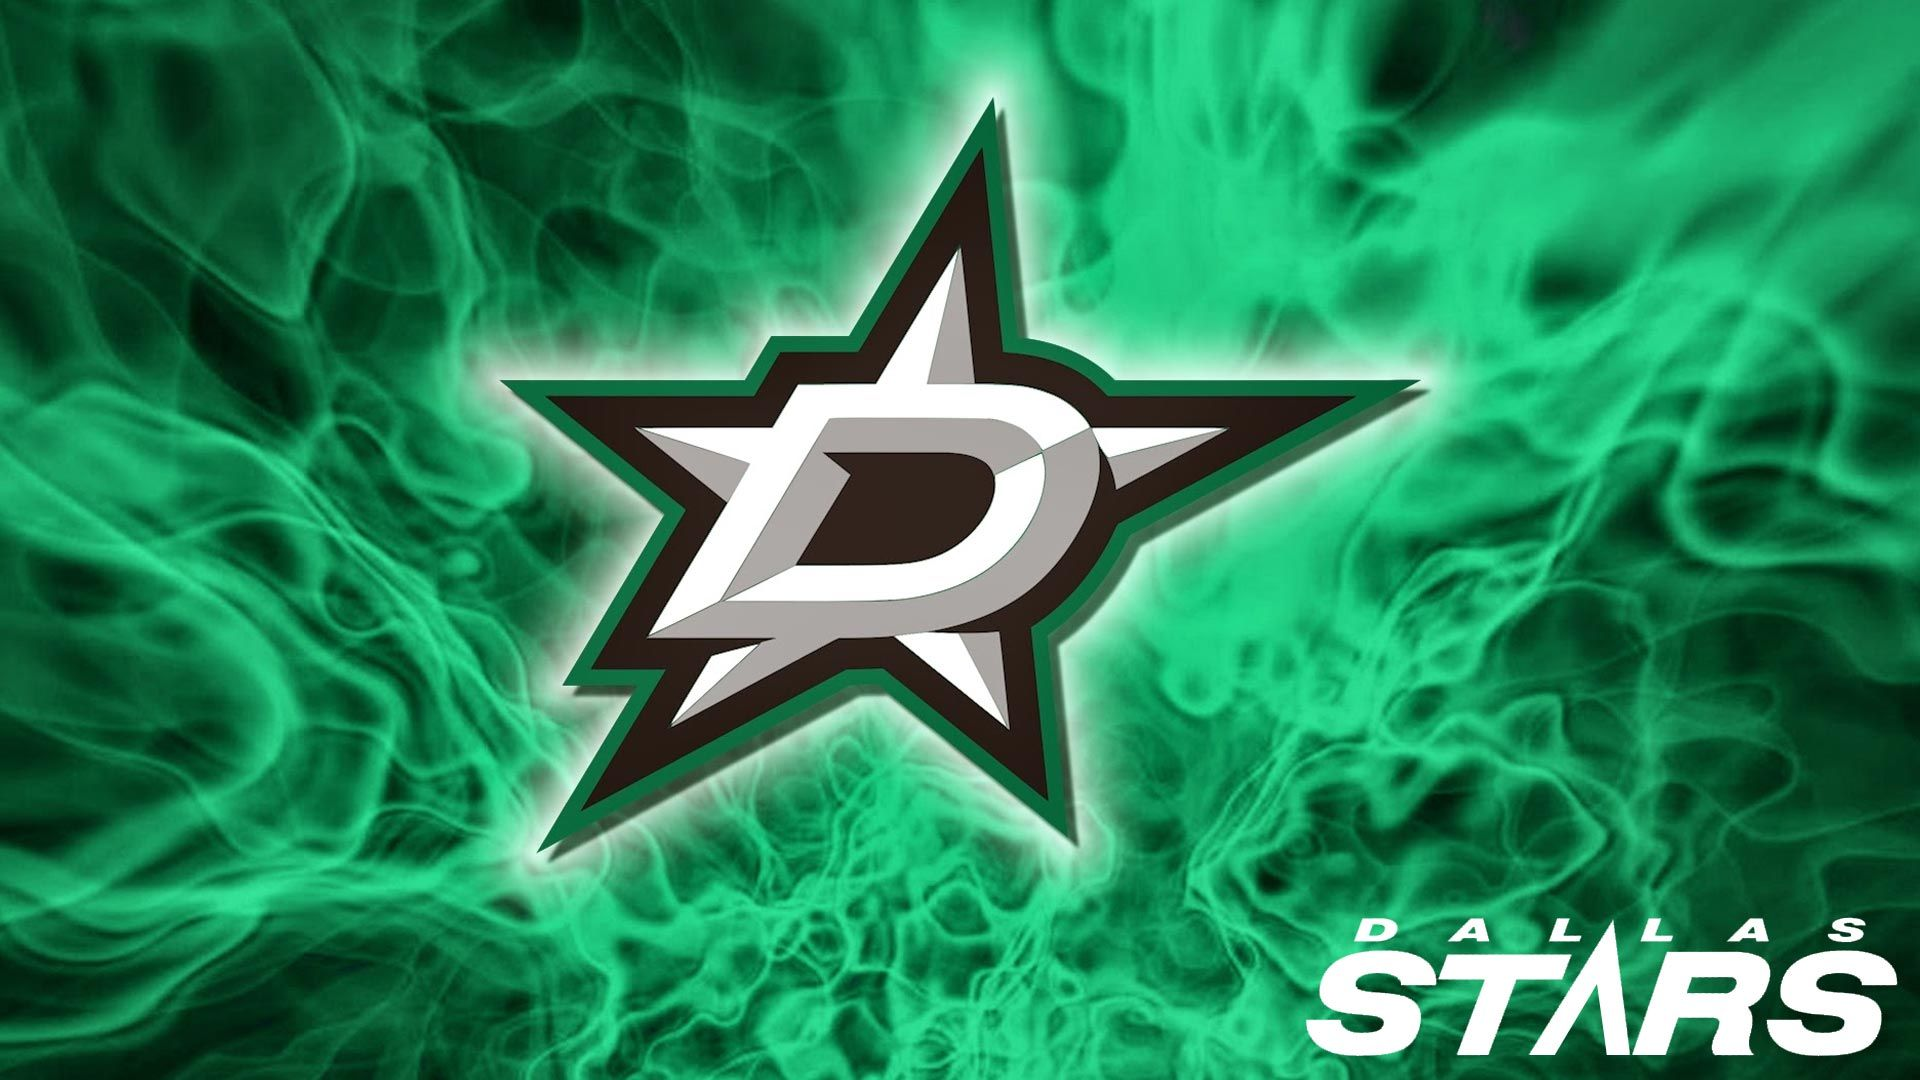 Free Download Dallas Stars Backgrounds Pixelstalk Net Dallas Stars Dallas Stars Hockey Stars Hockey